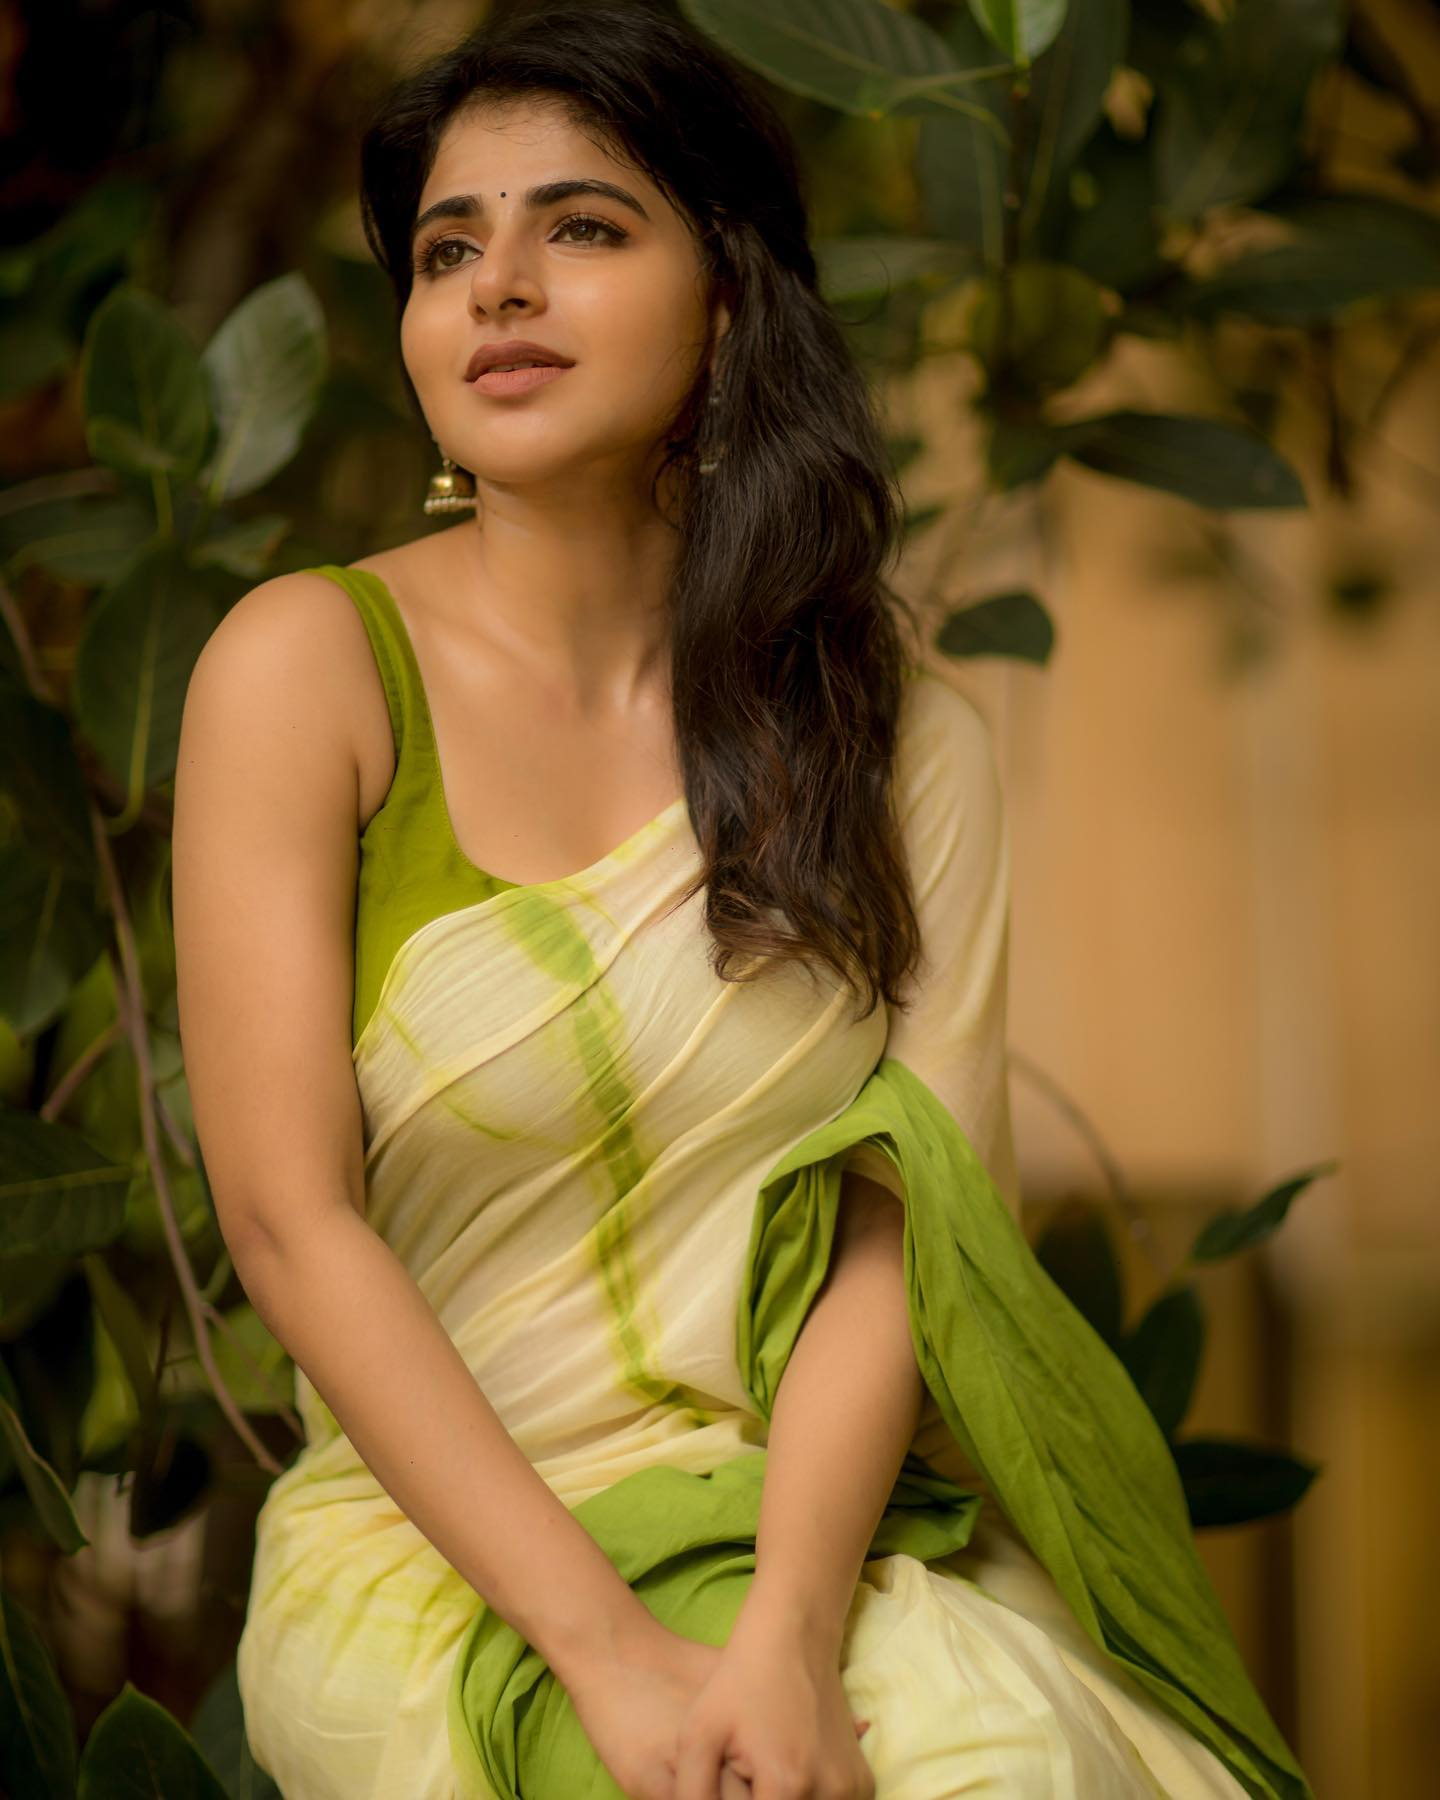 Gorgeous sweetheart Iswarya Menon in  Tie and dye mul saree.   Reach  on +91 7550227897 2021-07-19